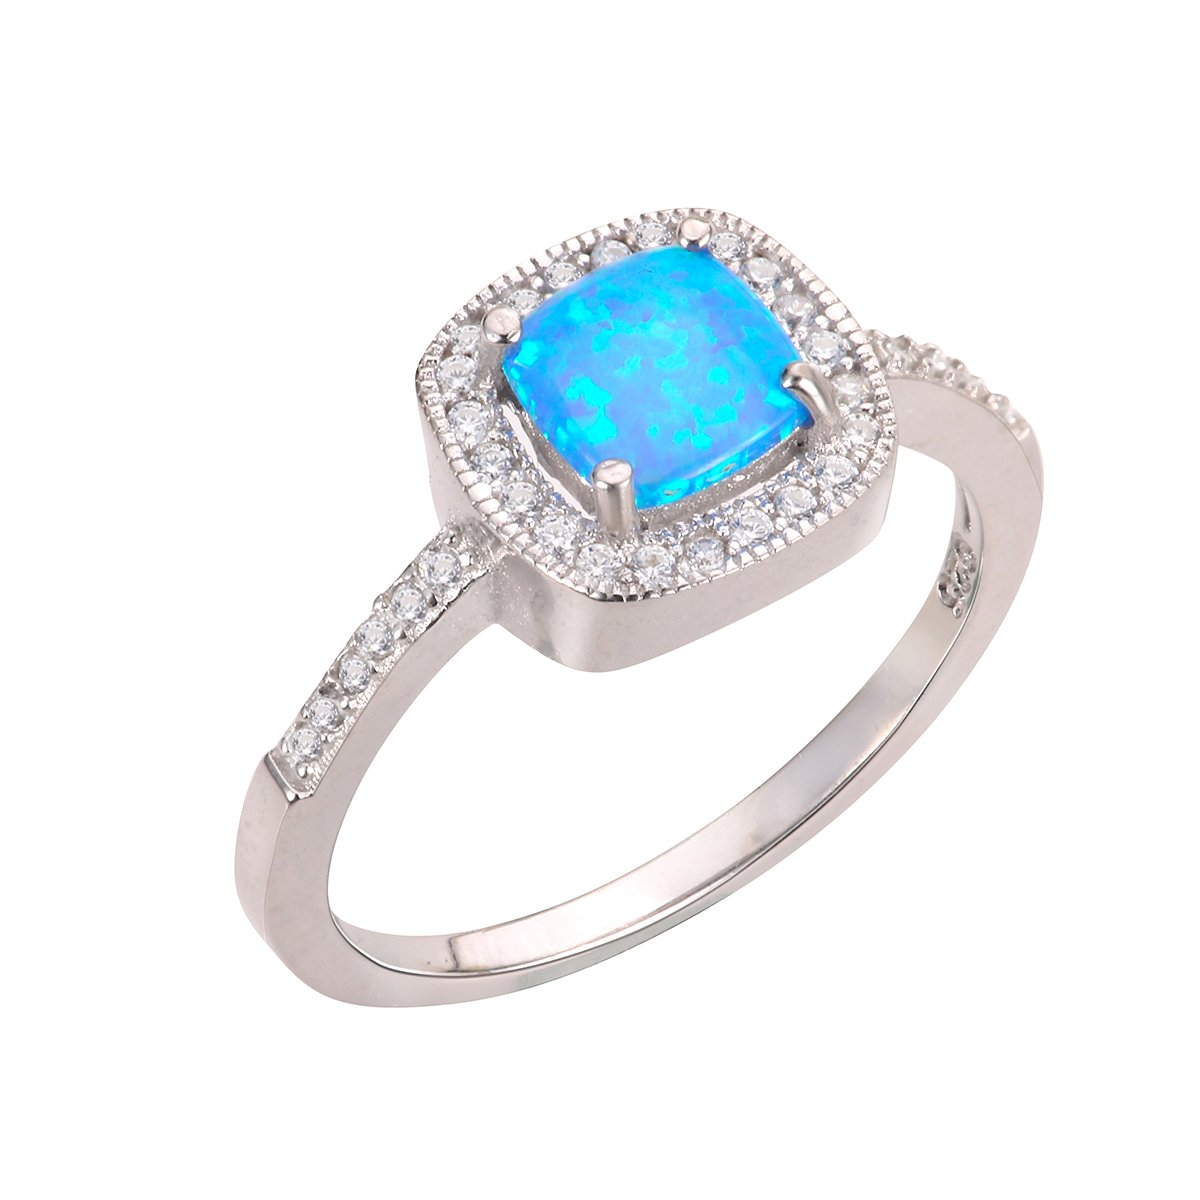 CloseoutWarehouse Blue Simulated Opal Princess Halo Ring Sterling Silver Size 6 by CloseoutWarehouse (Image #3)